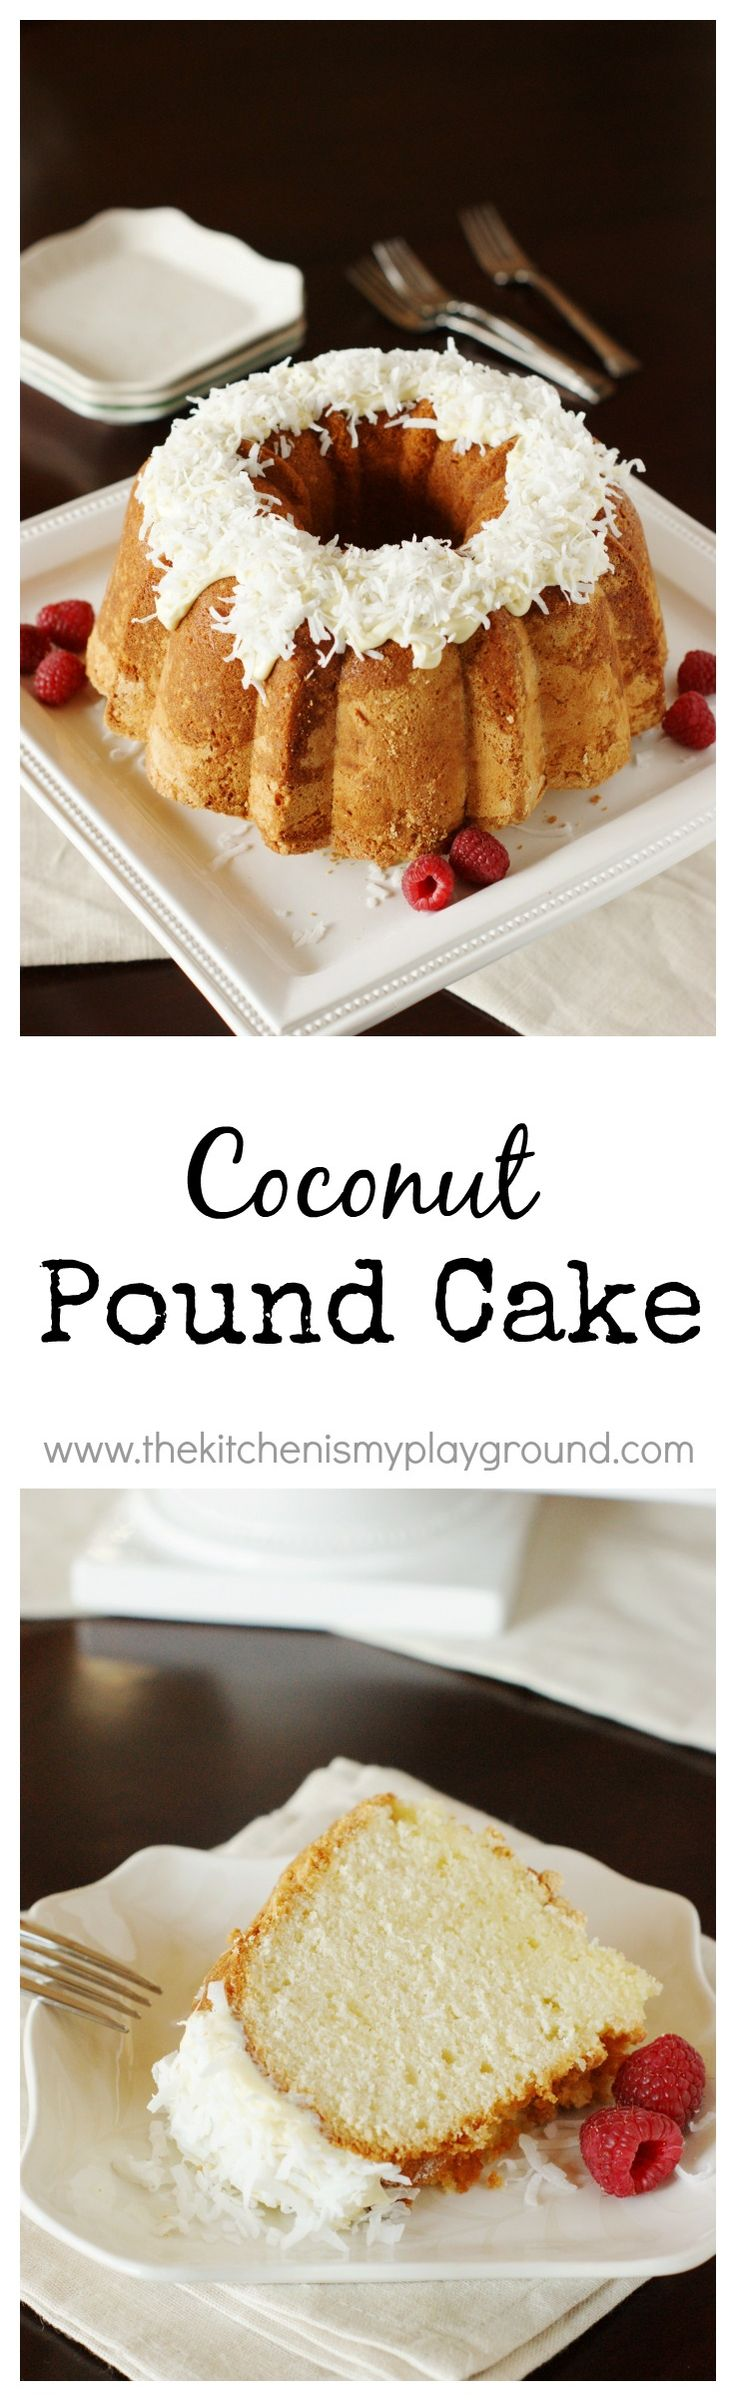 Coconut Pound Cake ~ moist, tender pound cake loaded with fabulous coconut flavor.  www.thekitchenismyplayground.com